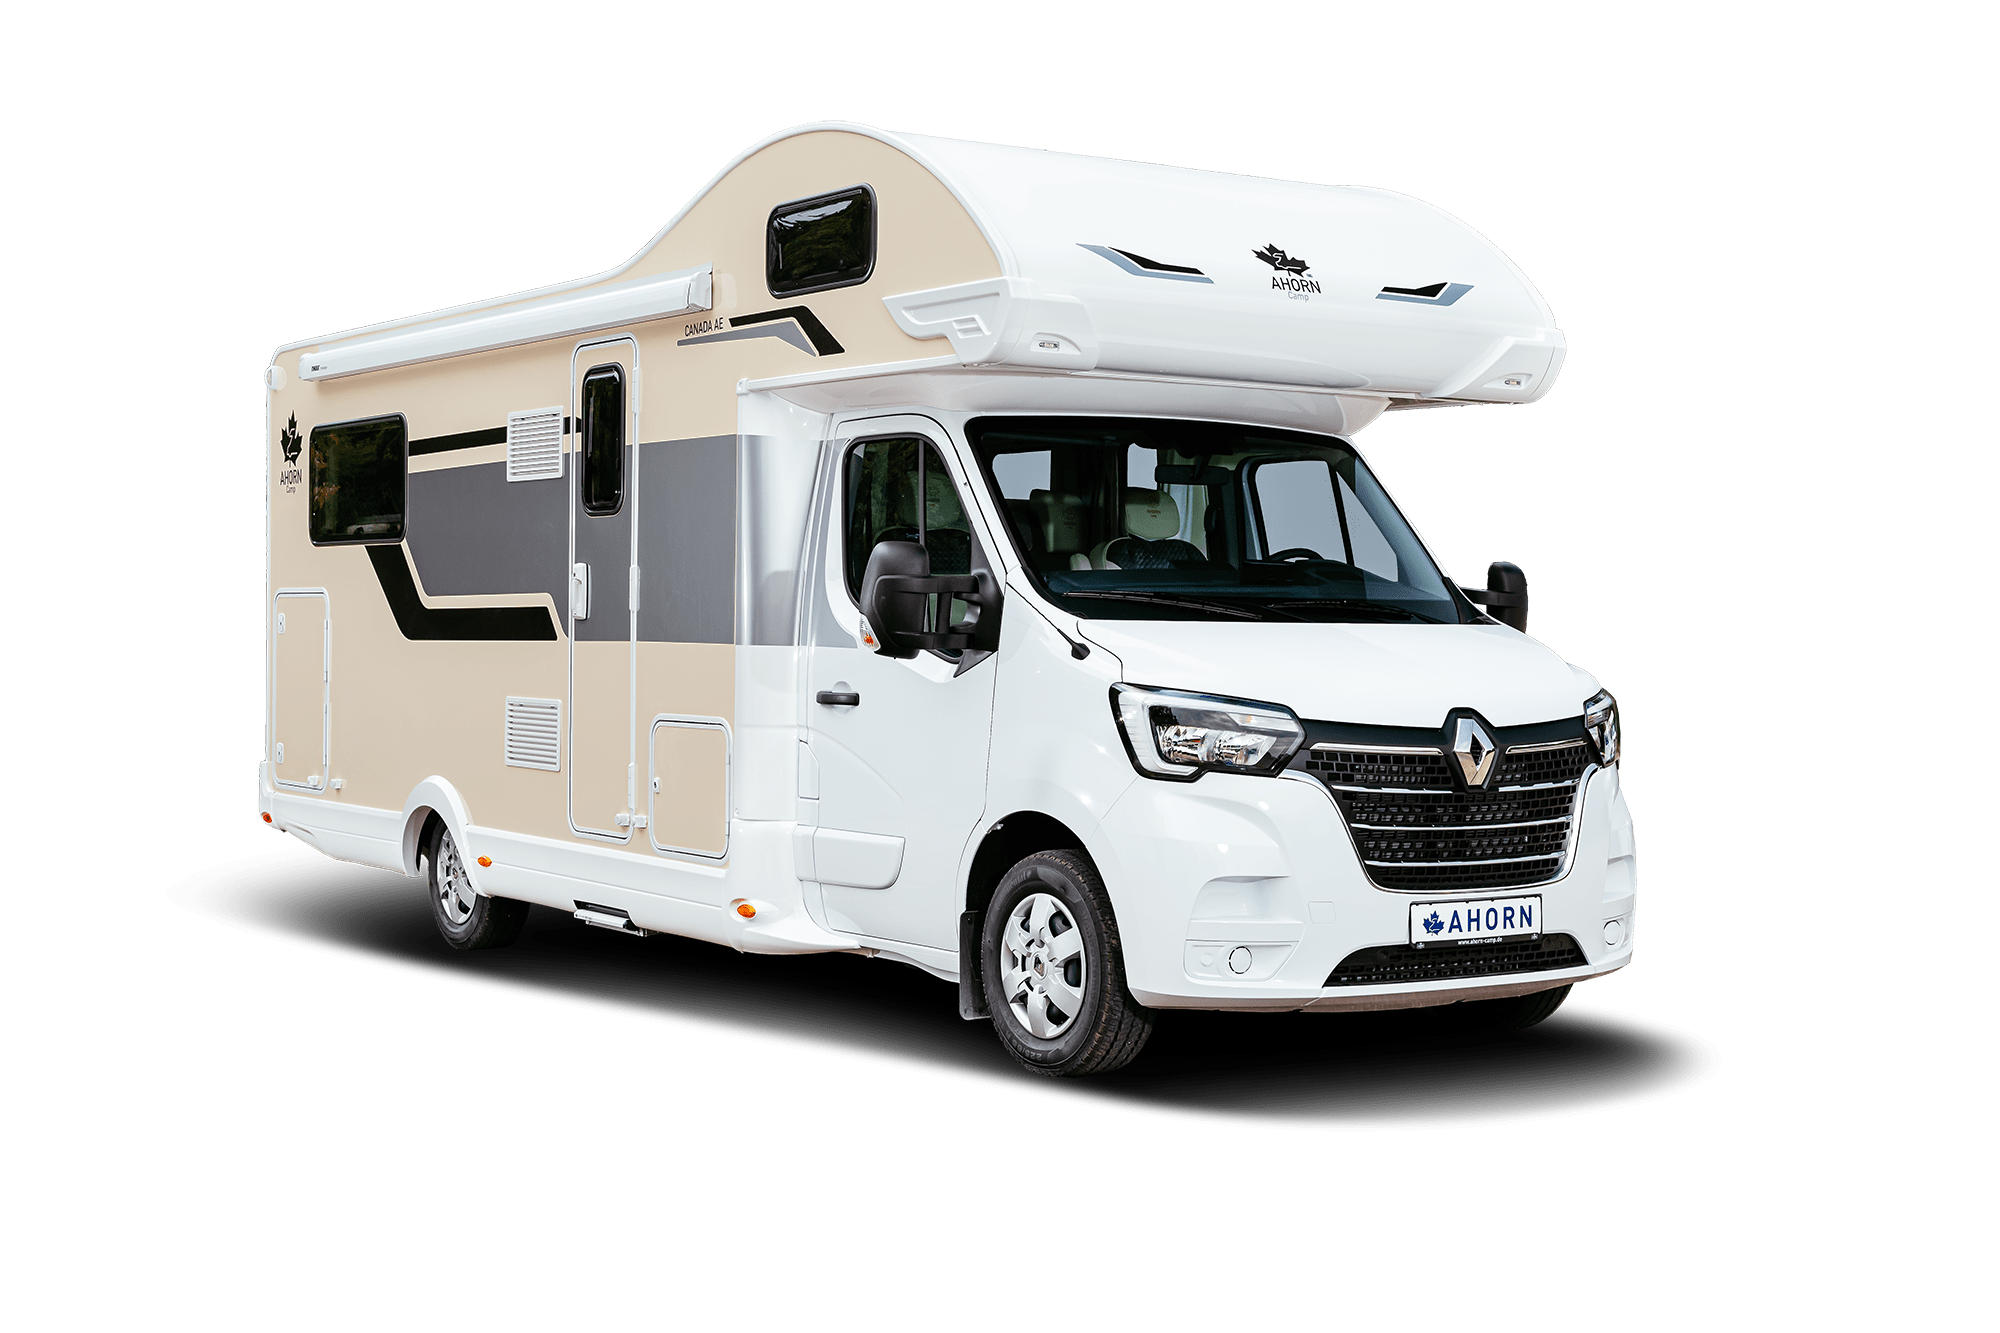 Ahorn Camp  Motorhomes and panel vans from Speyer